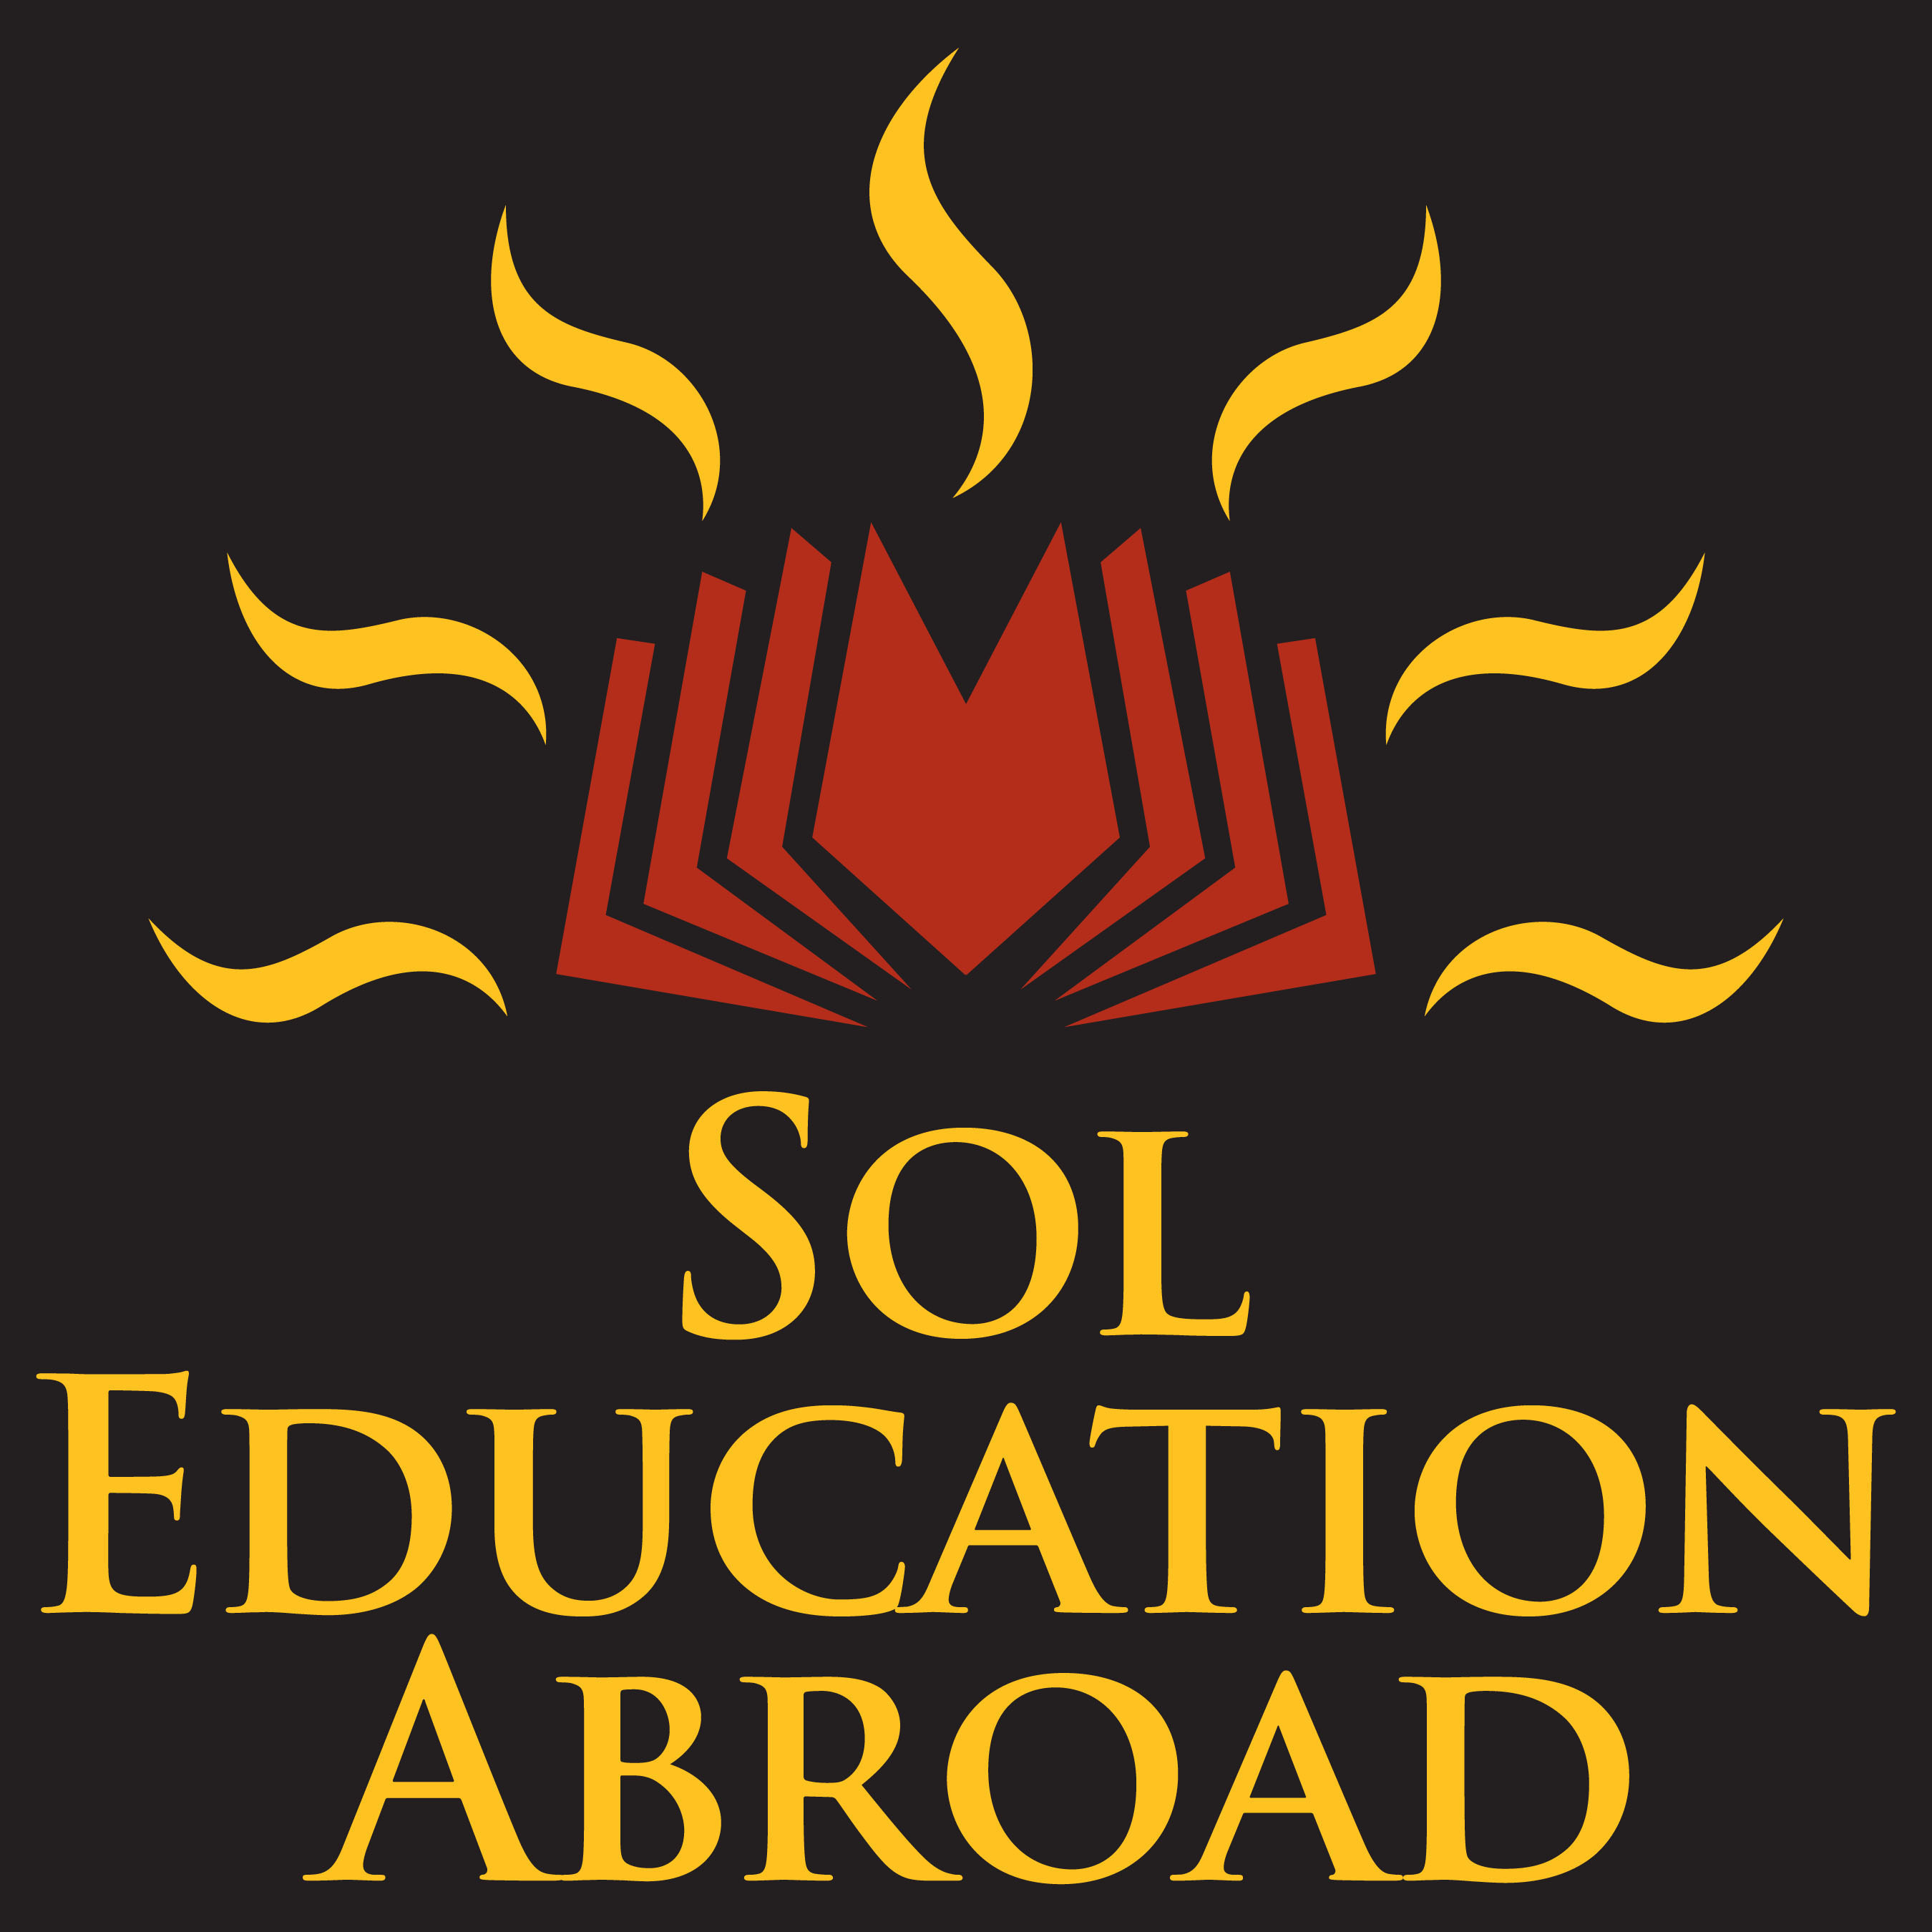 Sol Education Abroad voted the #1 Study Abroad Program in